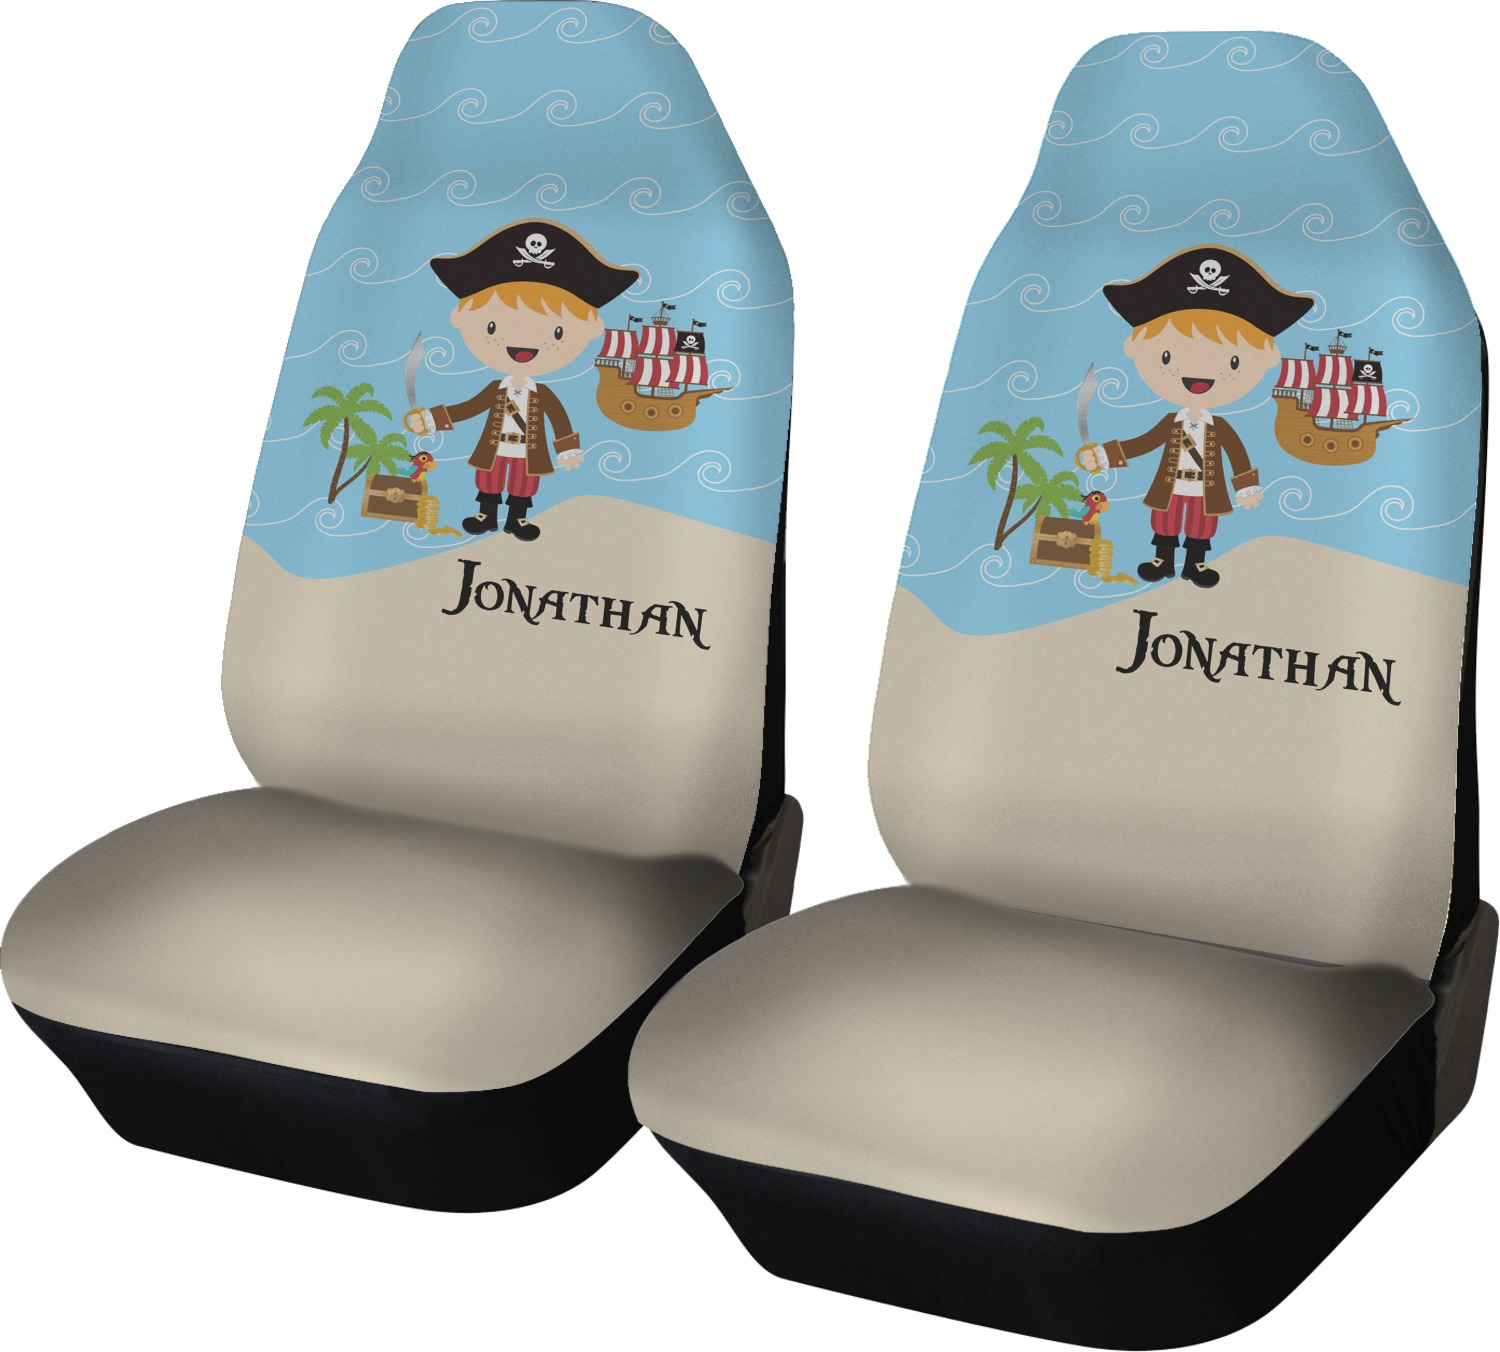 Peachy Pirate Scene Car Seat Covers Set Of Two Personalized Dailytribune Chair Design For Home Dailytribuneorg